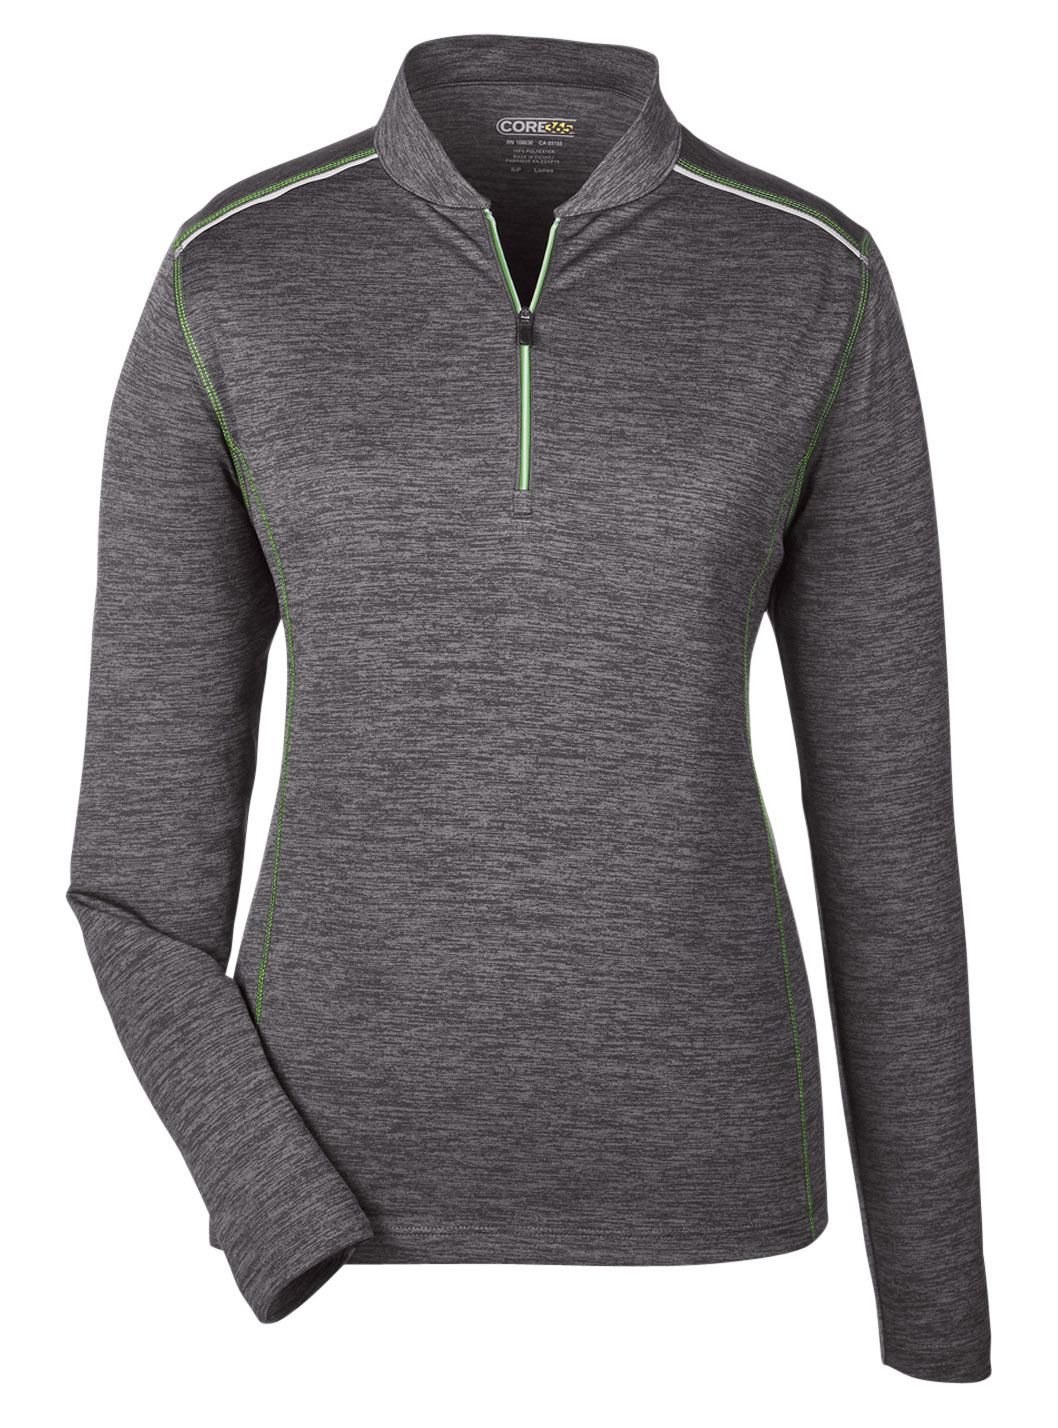 Core 365 Ladies Kinetic Performance 1/4-Zip